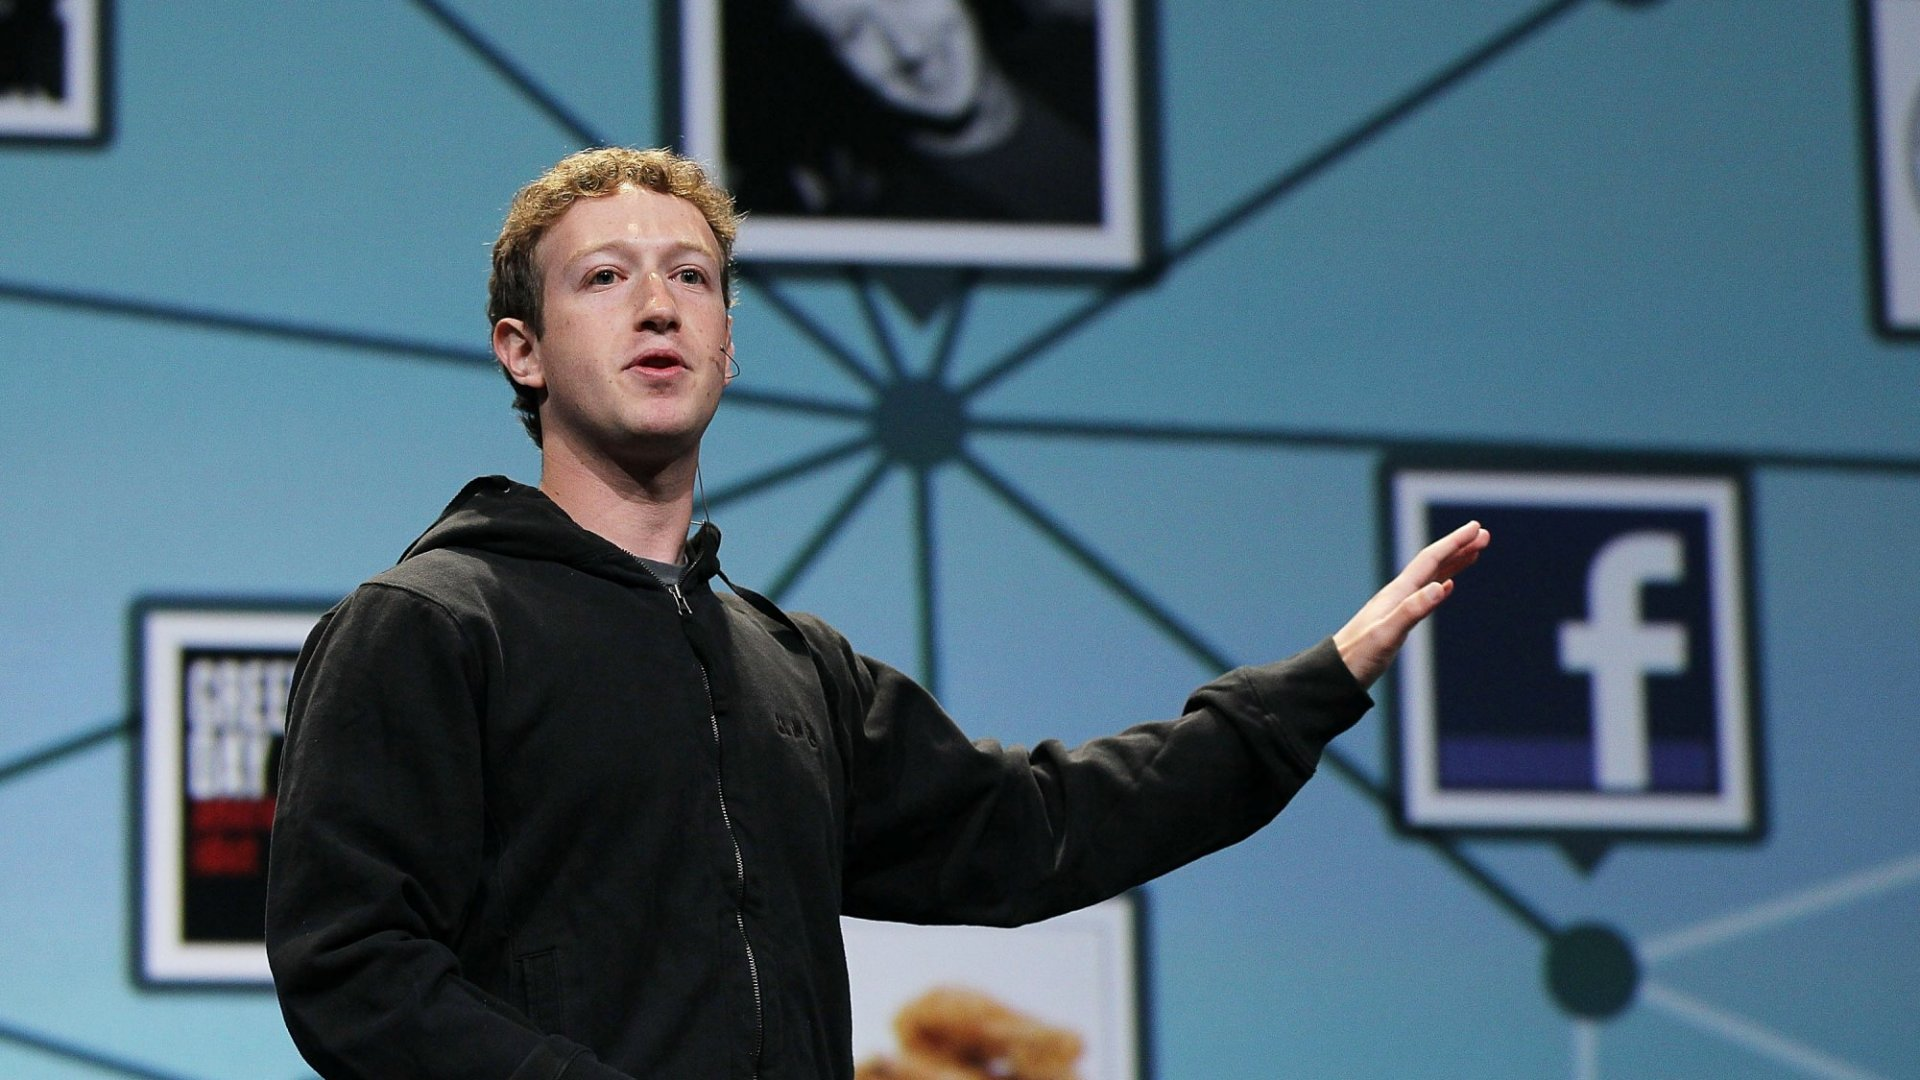 How Mark Zuckerberg Keeps His Ridiculously Challenging New Year's Resolutions